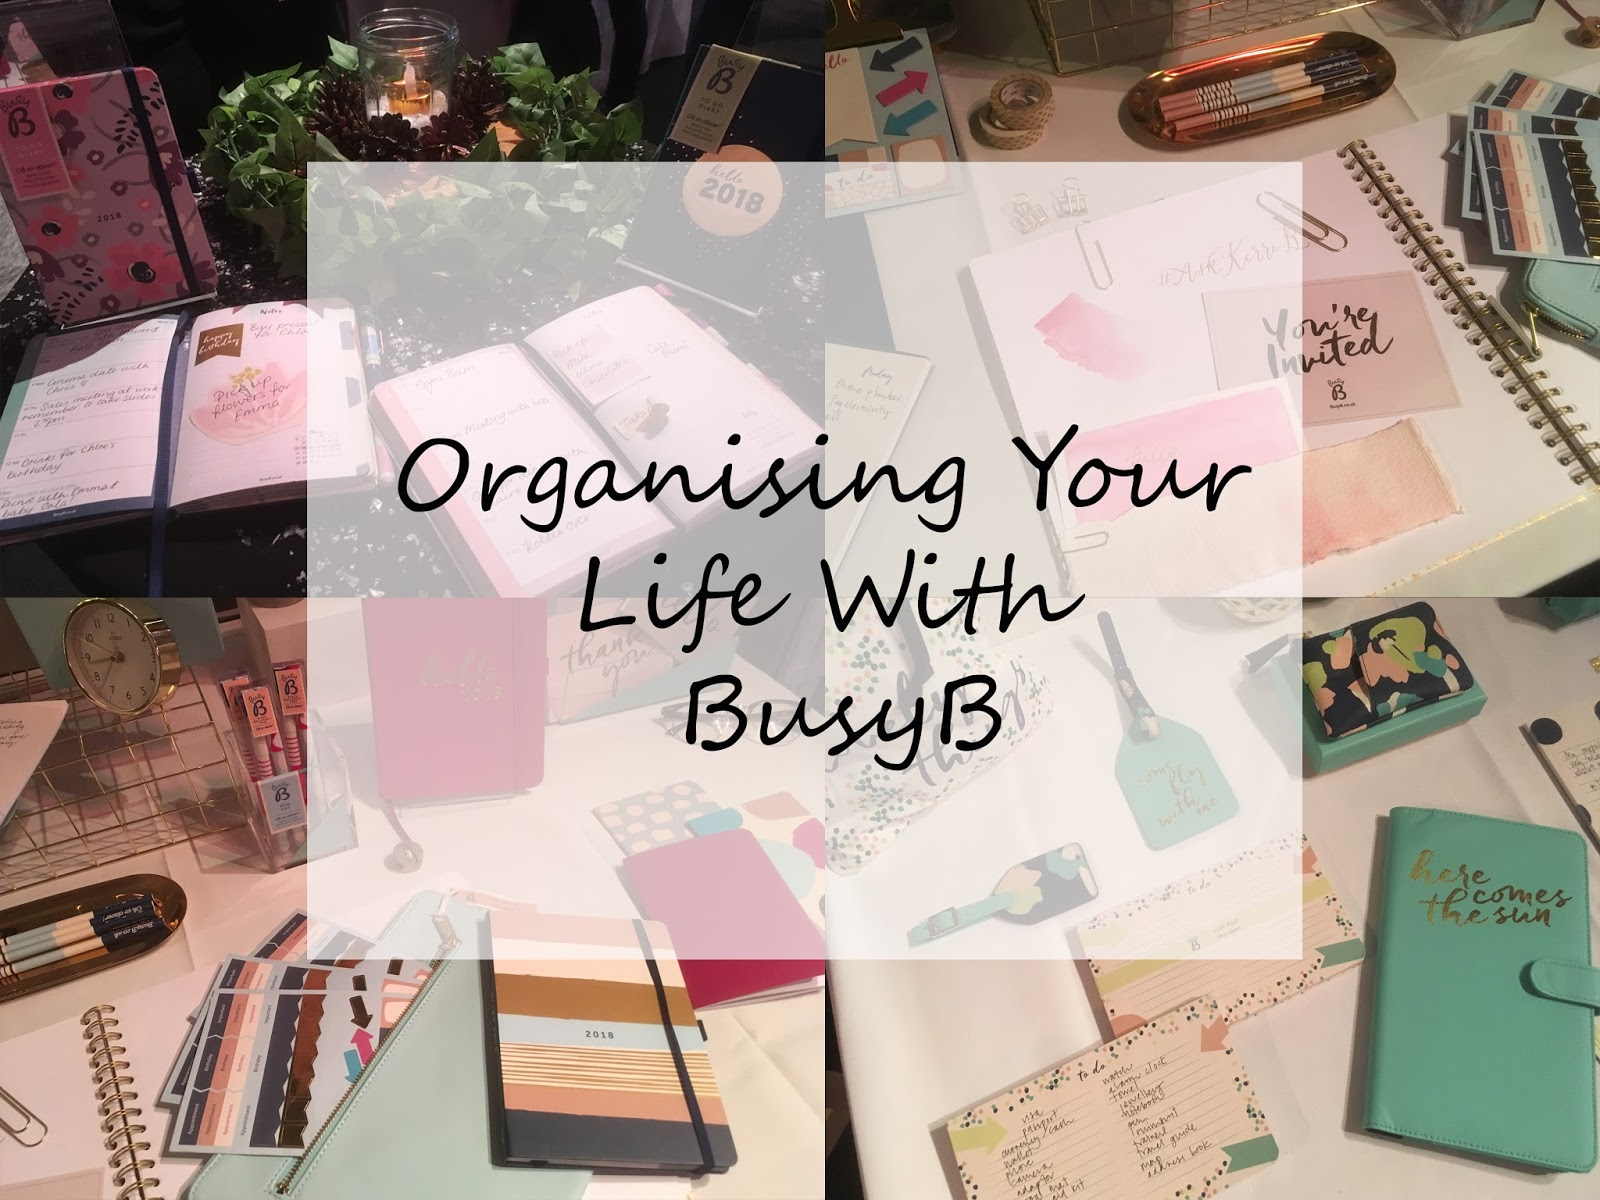 Organising Your Life With BusyB